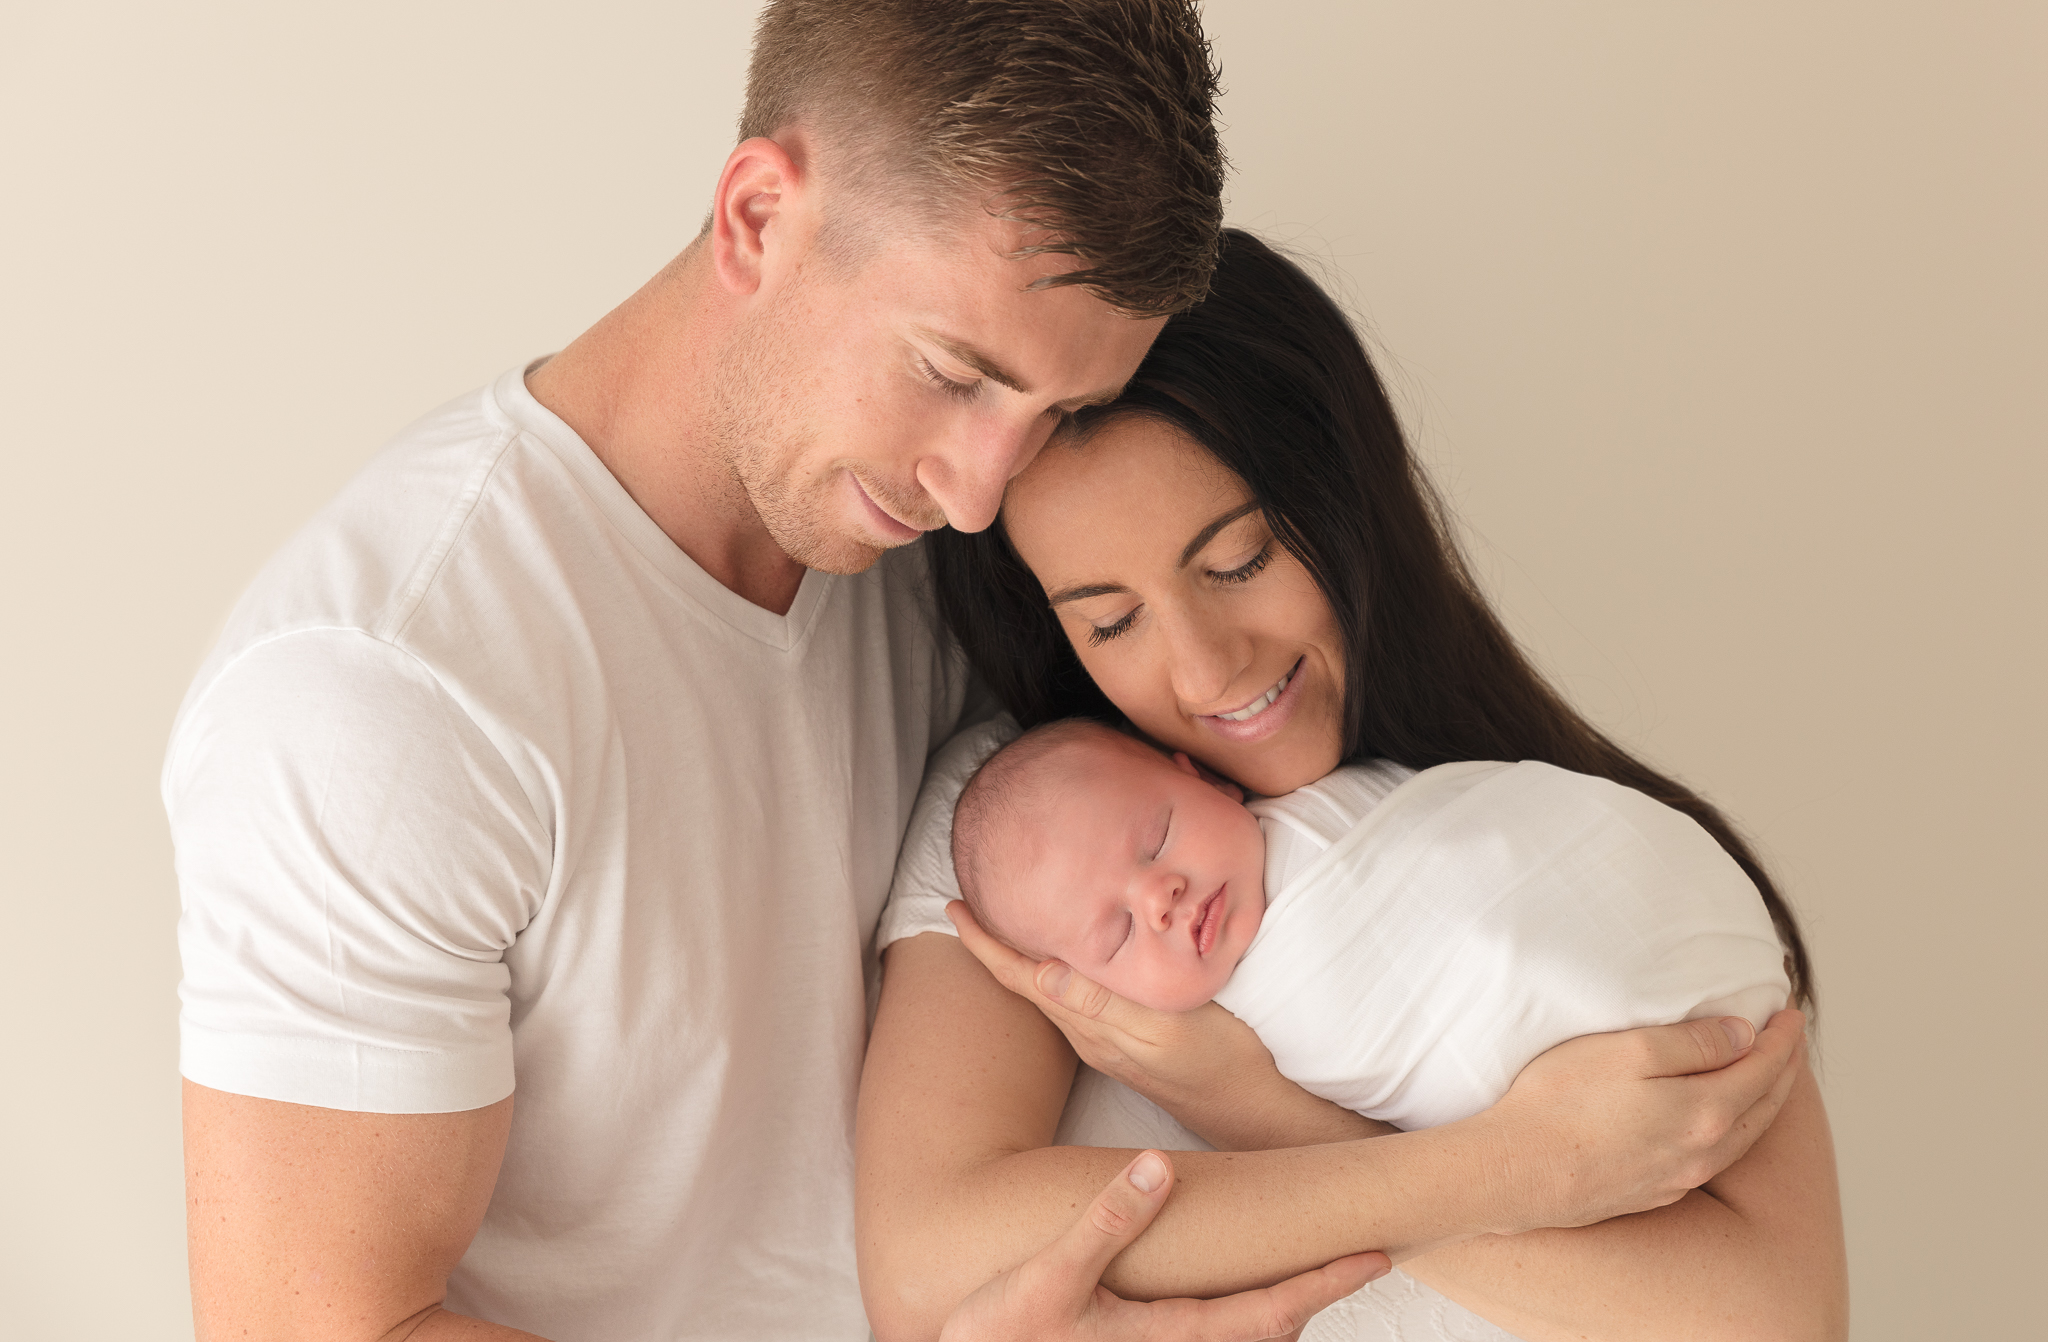 family-newborn-portrait-jcimagery-photography-adelaide-smile-connection